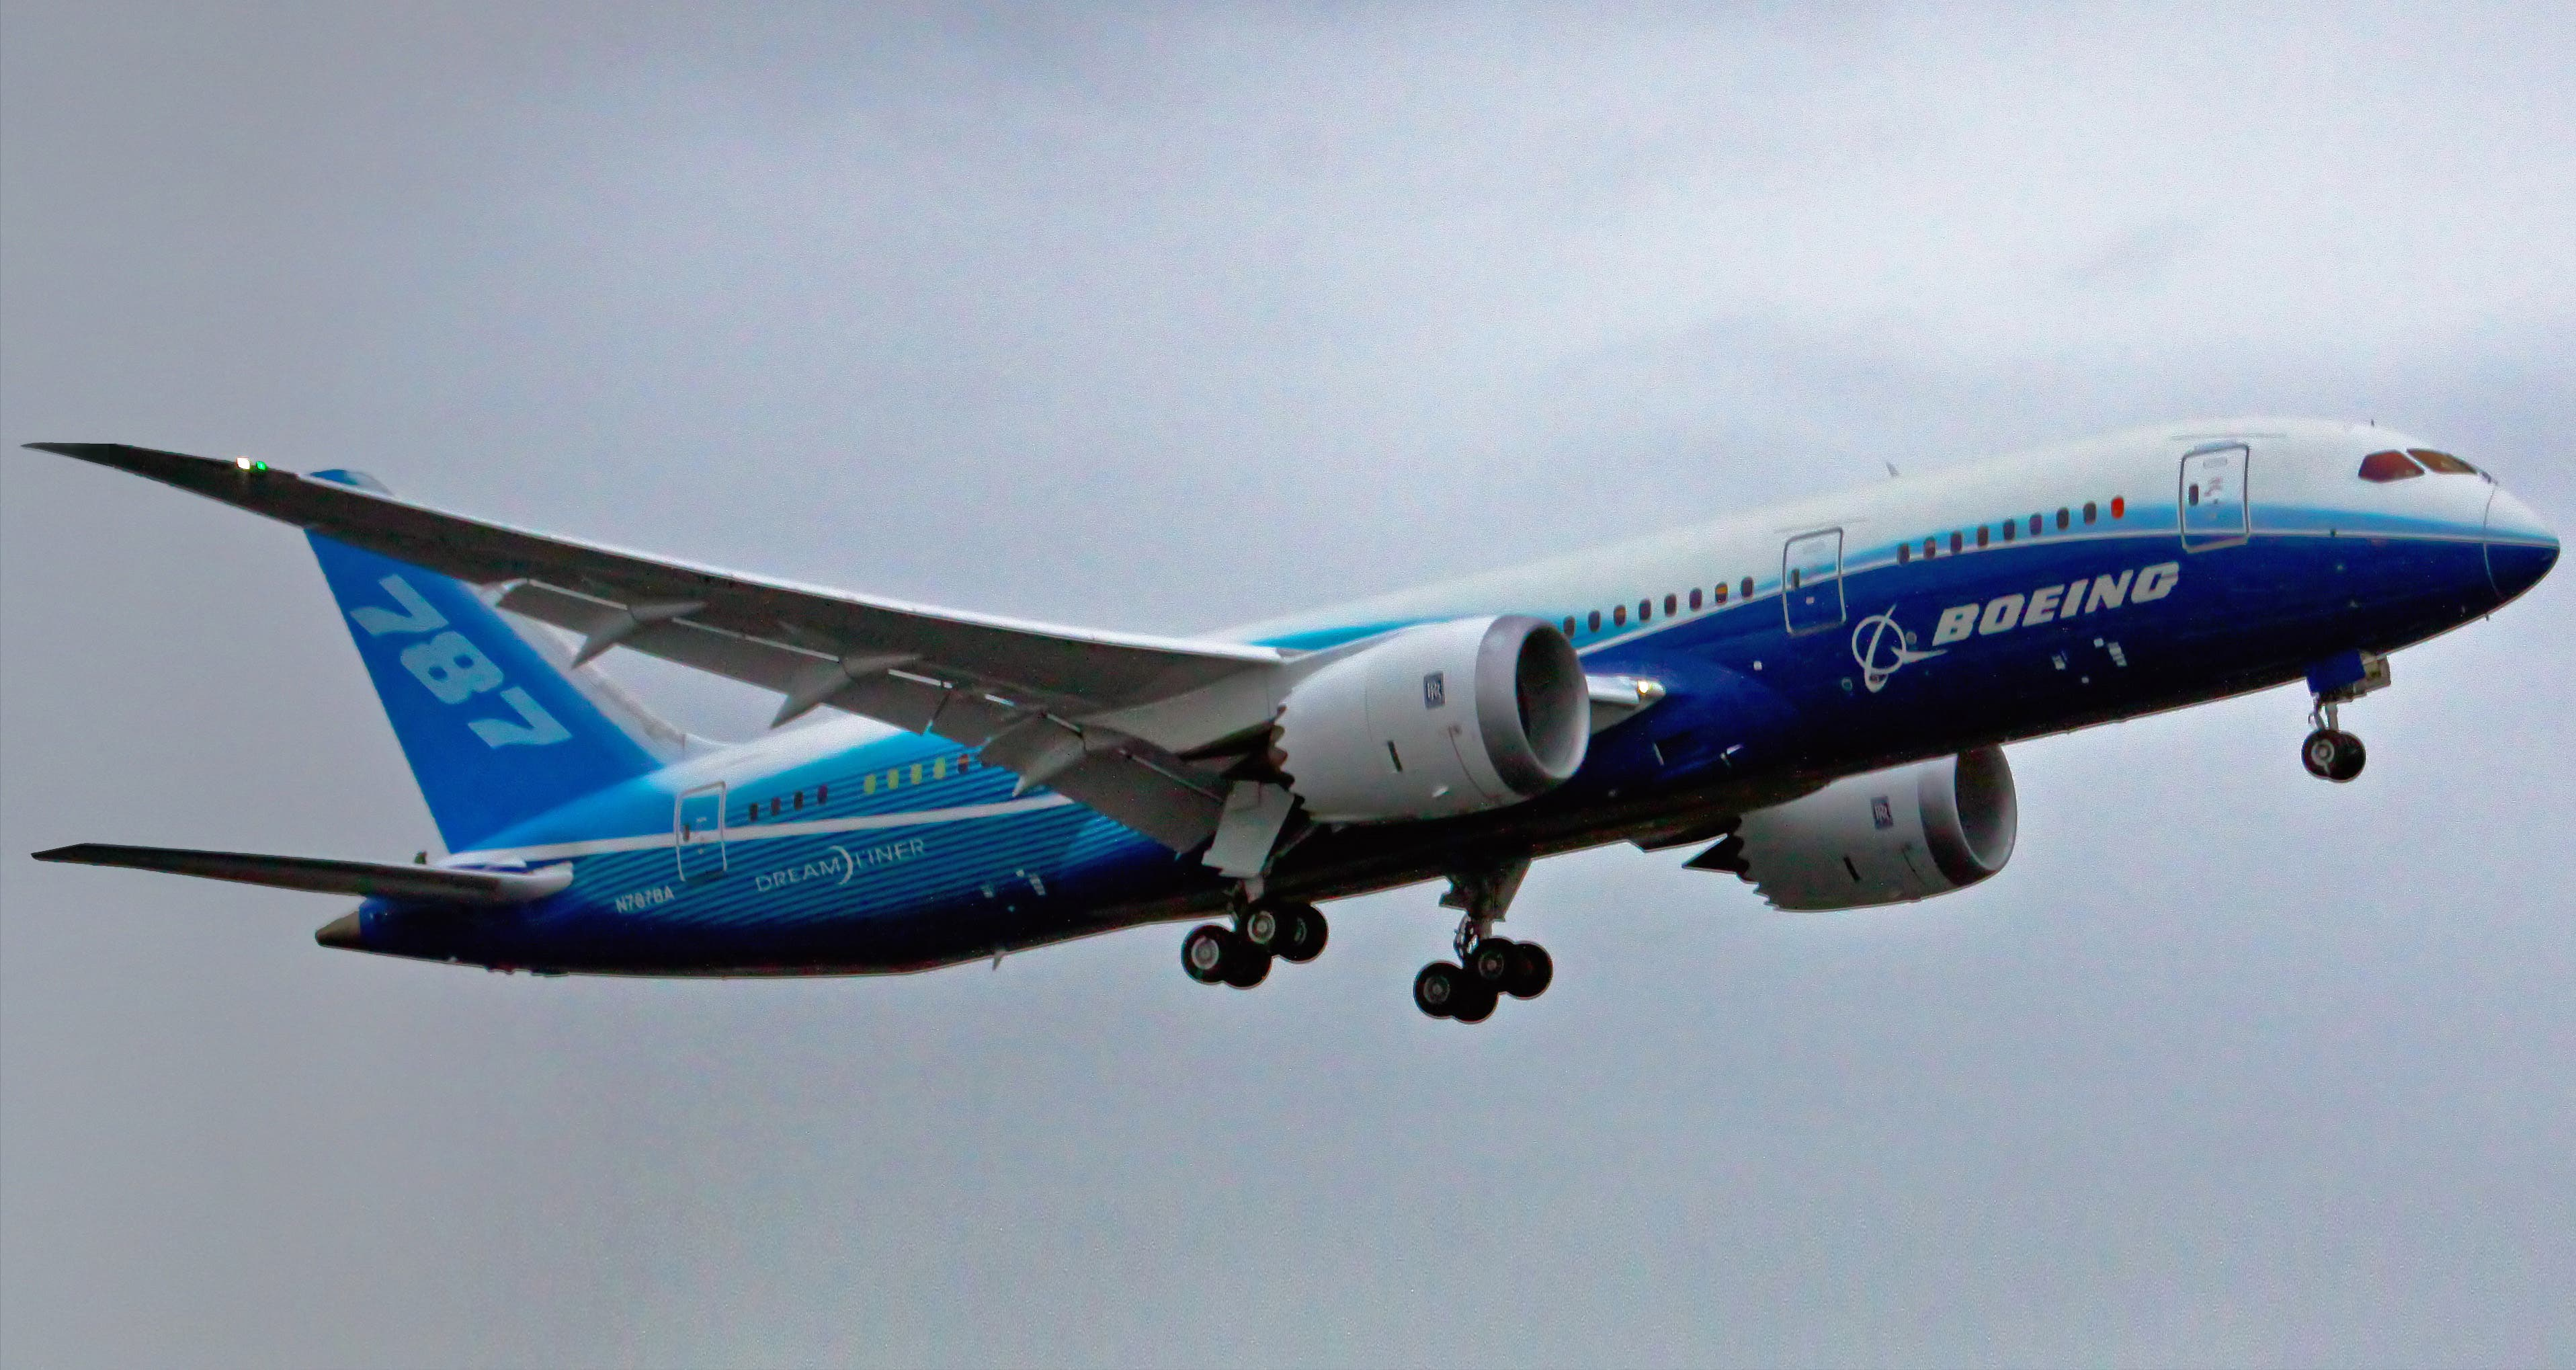 Boeing will require 2,610 new airplanes over the next 20 years for its Middle East fleet (Courtesy of Wikimedia)